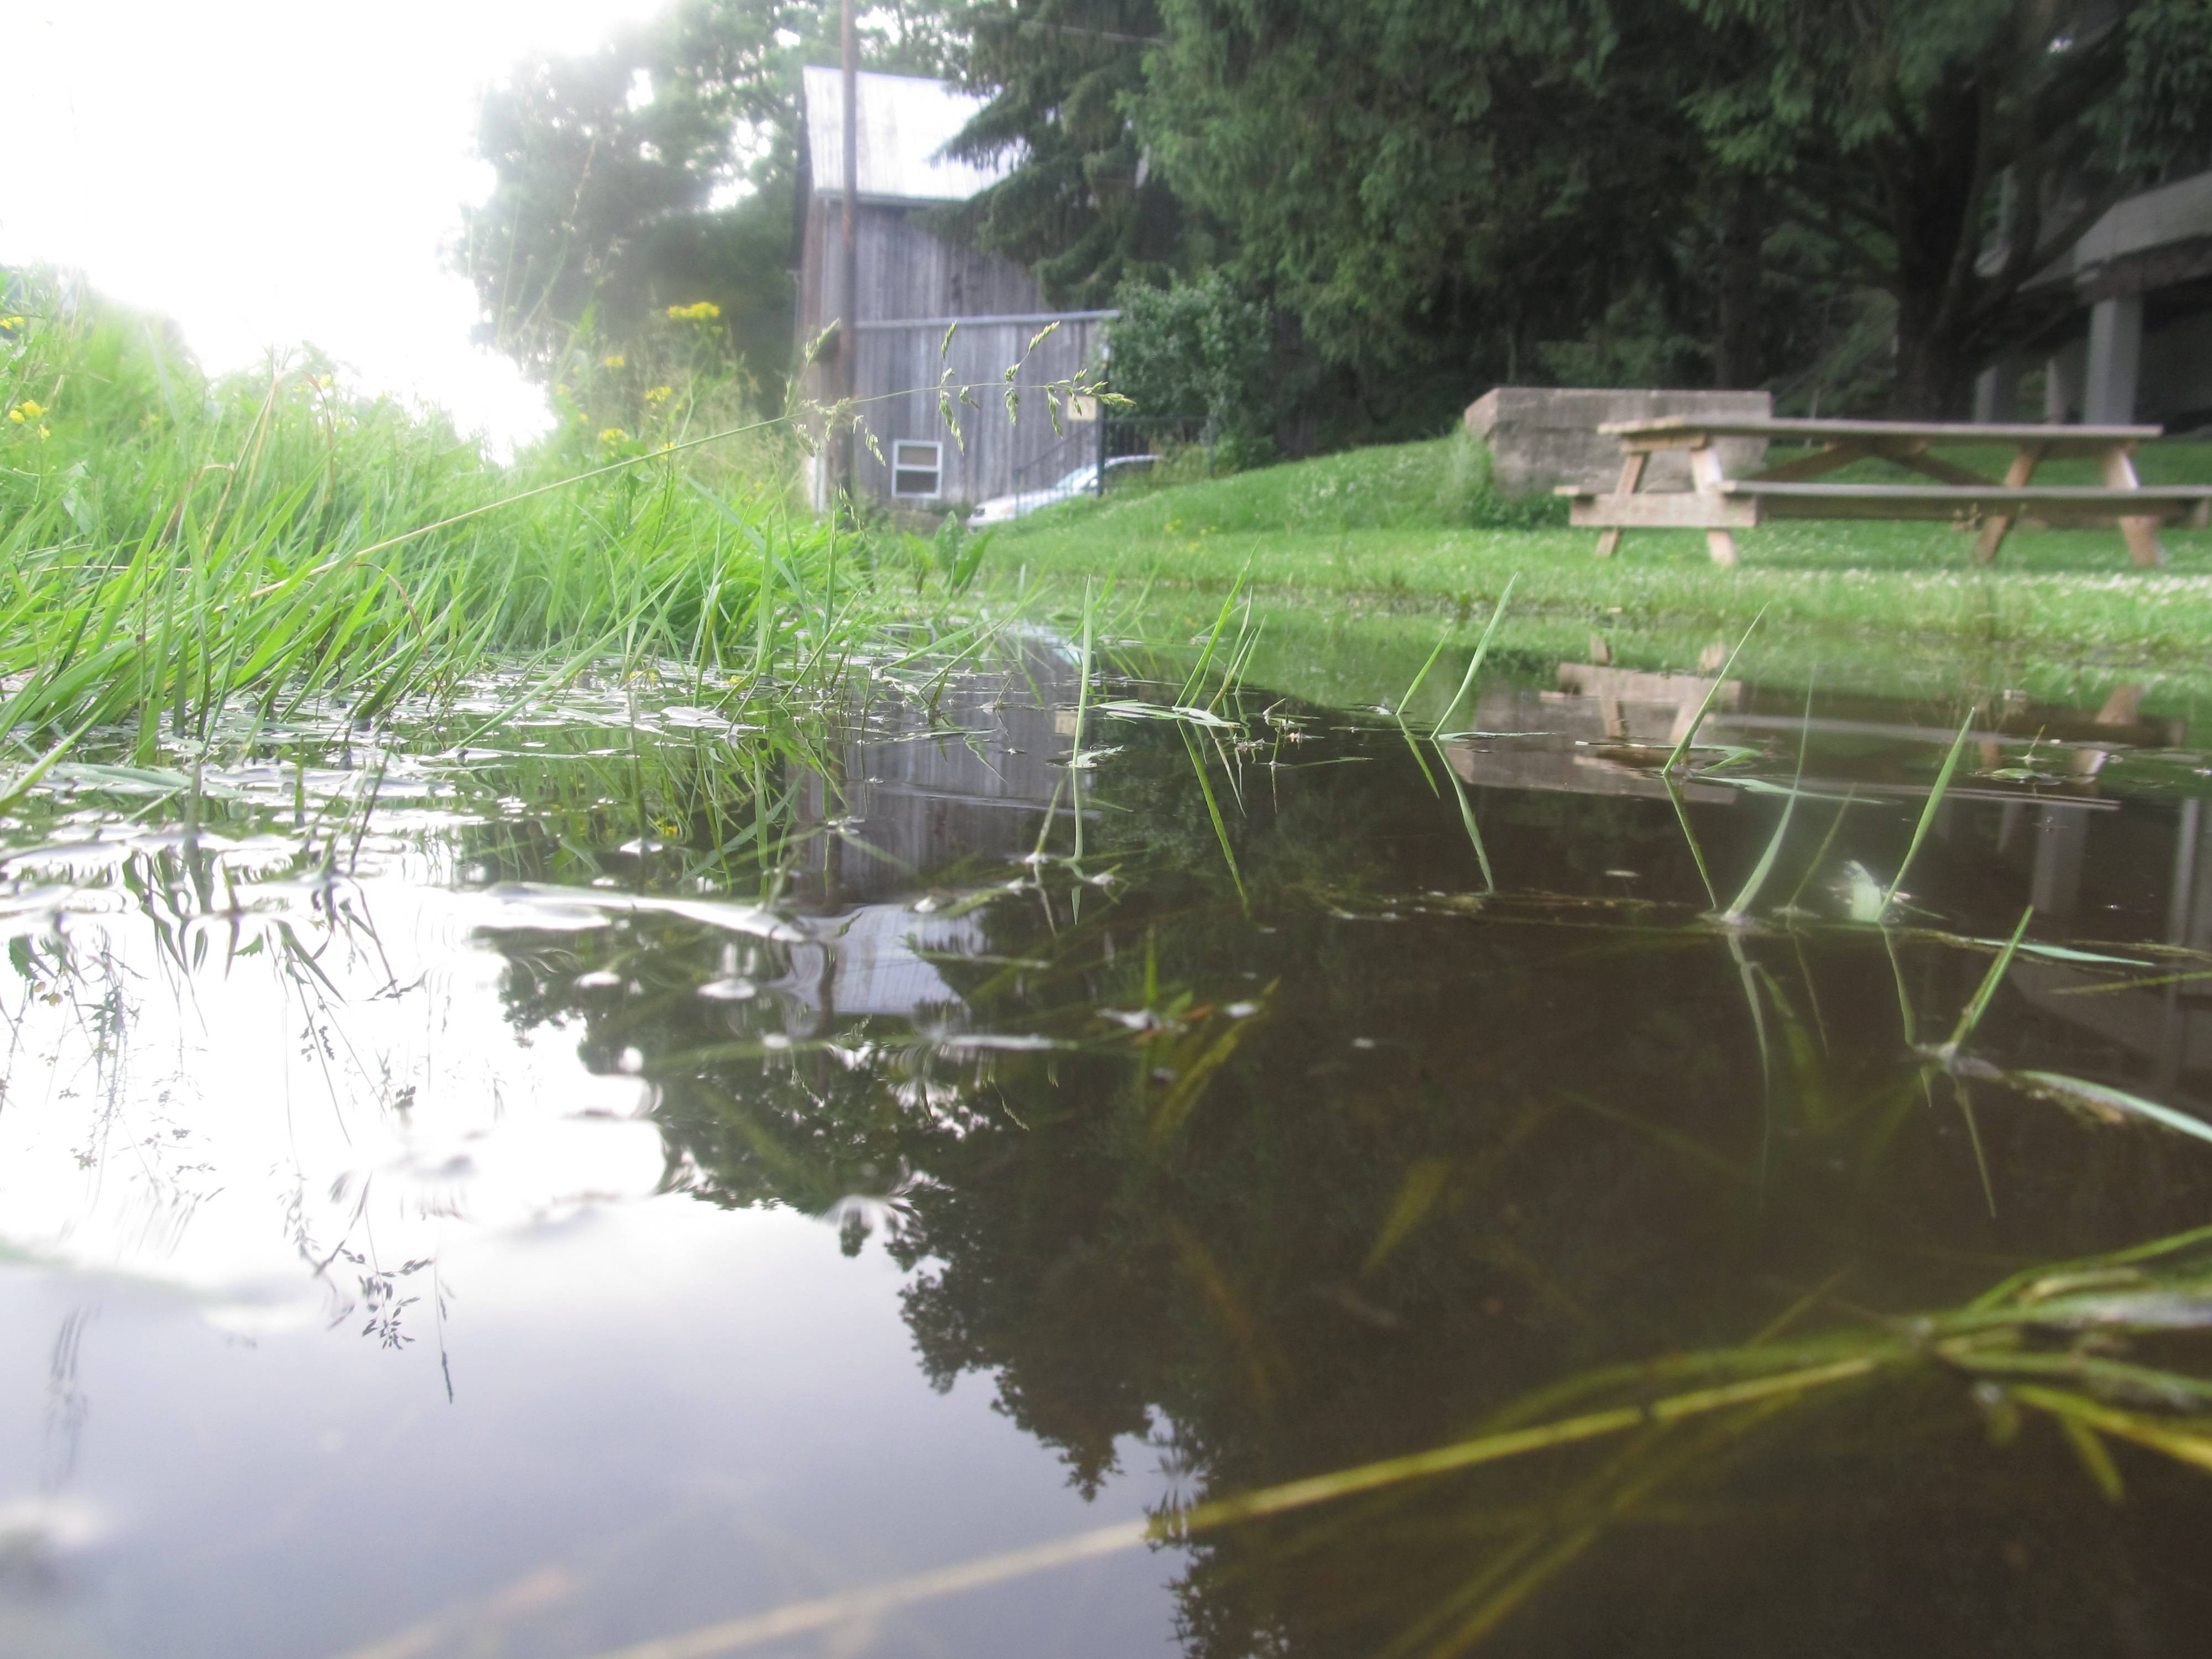 lawn mower wiring diagram of star delta motor starter plant recommendations - what grass types will survive in areas standing water that last for ...